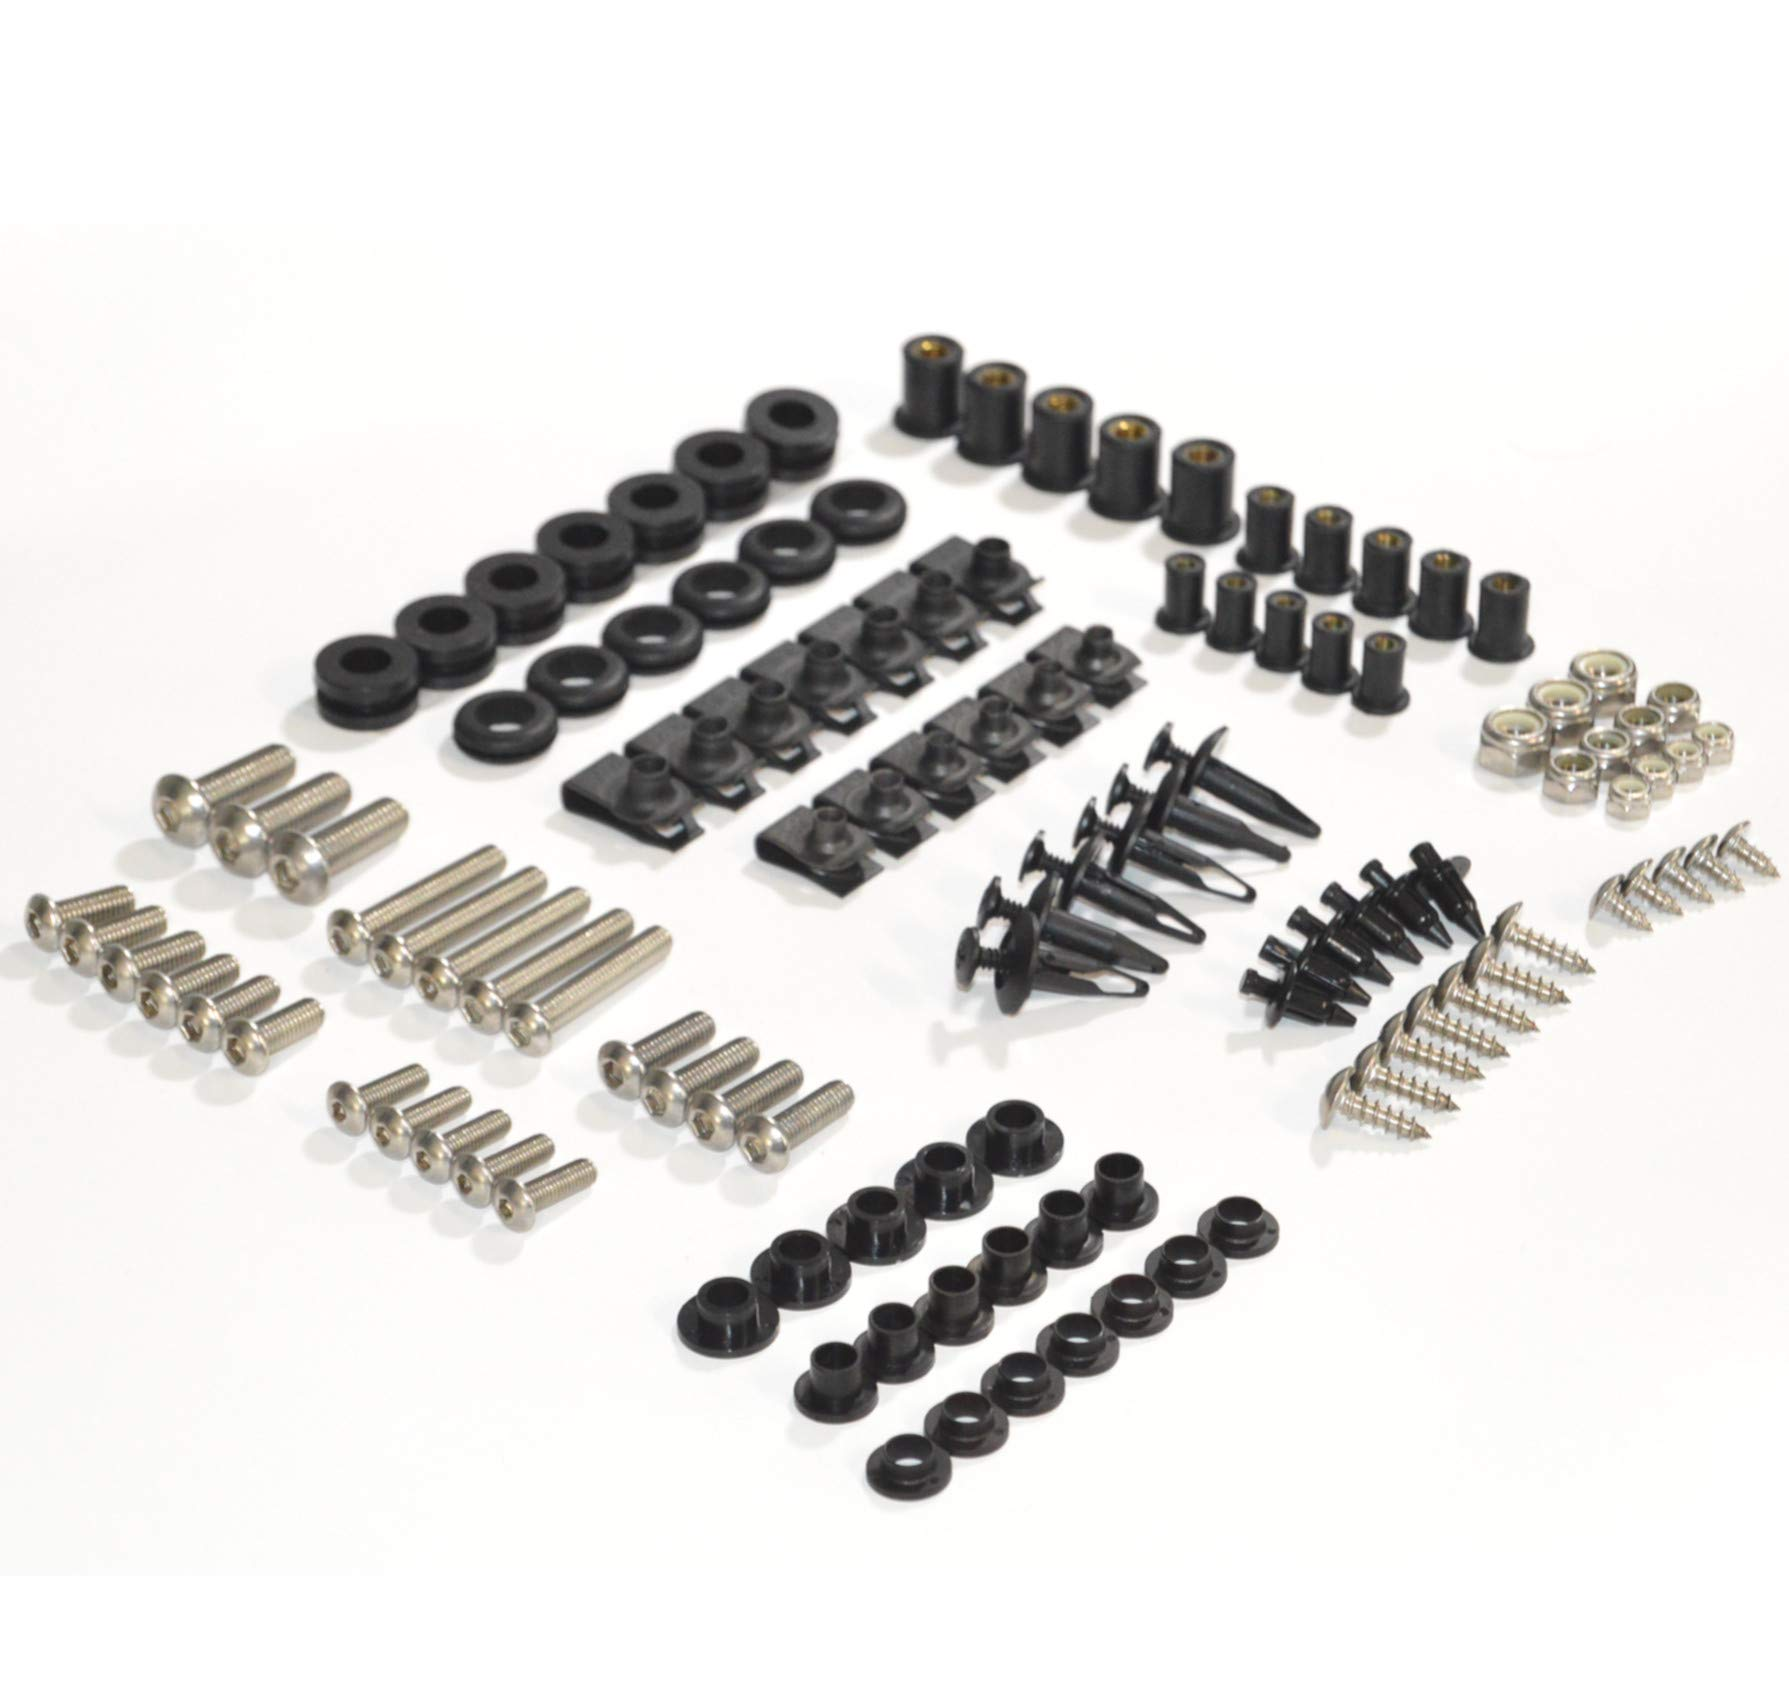 Complete Motorcycle Fairing Bolt Kit Kawasaki ZX-6R ZX-6RR 2005-2006 Body Screws, Fasteners, and Hardware